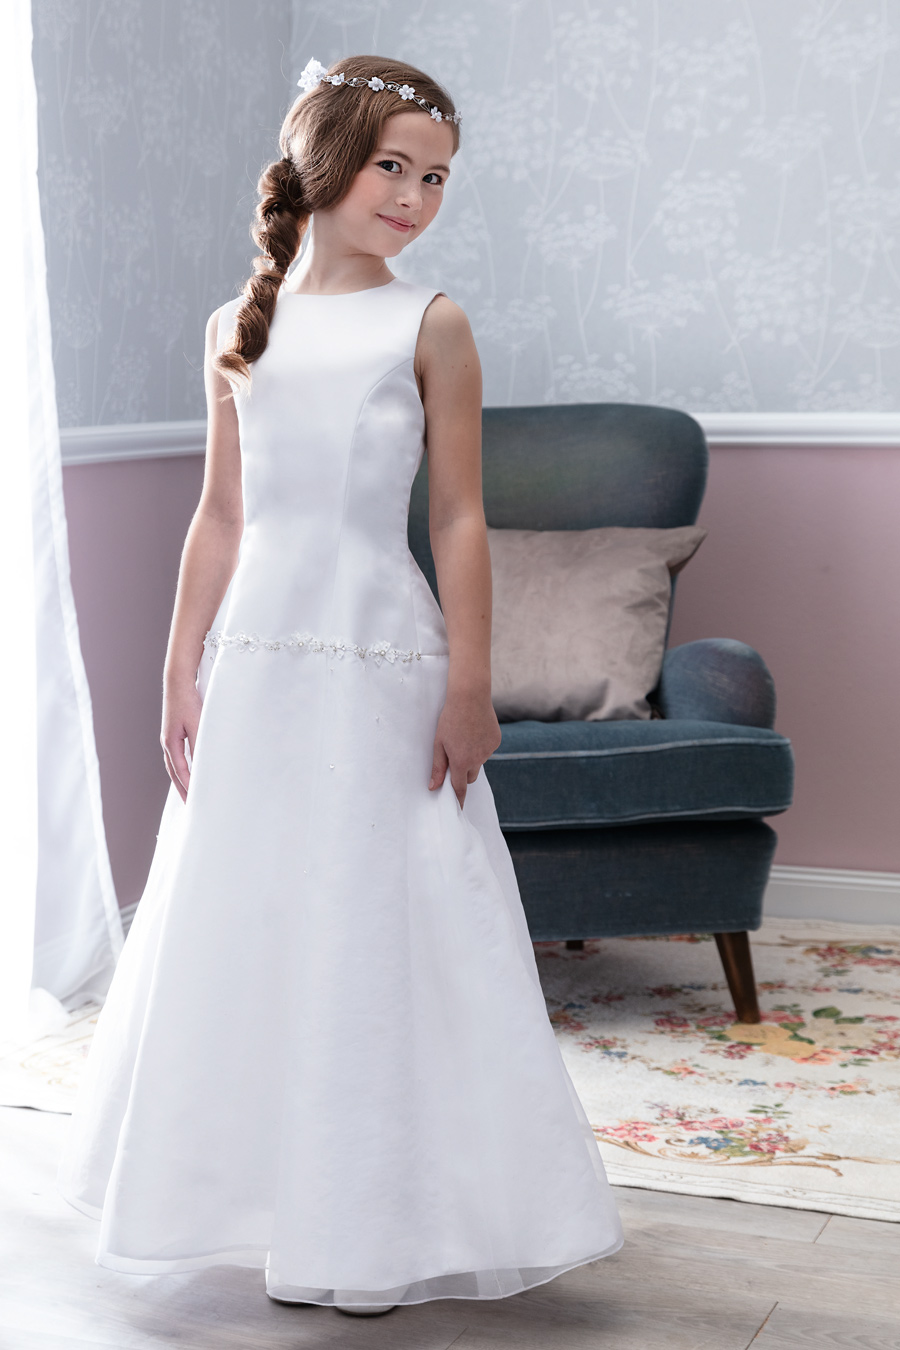 EM 2014 DRESS: DAKOTA Emmerling